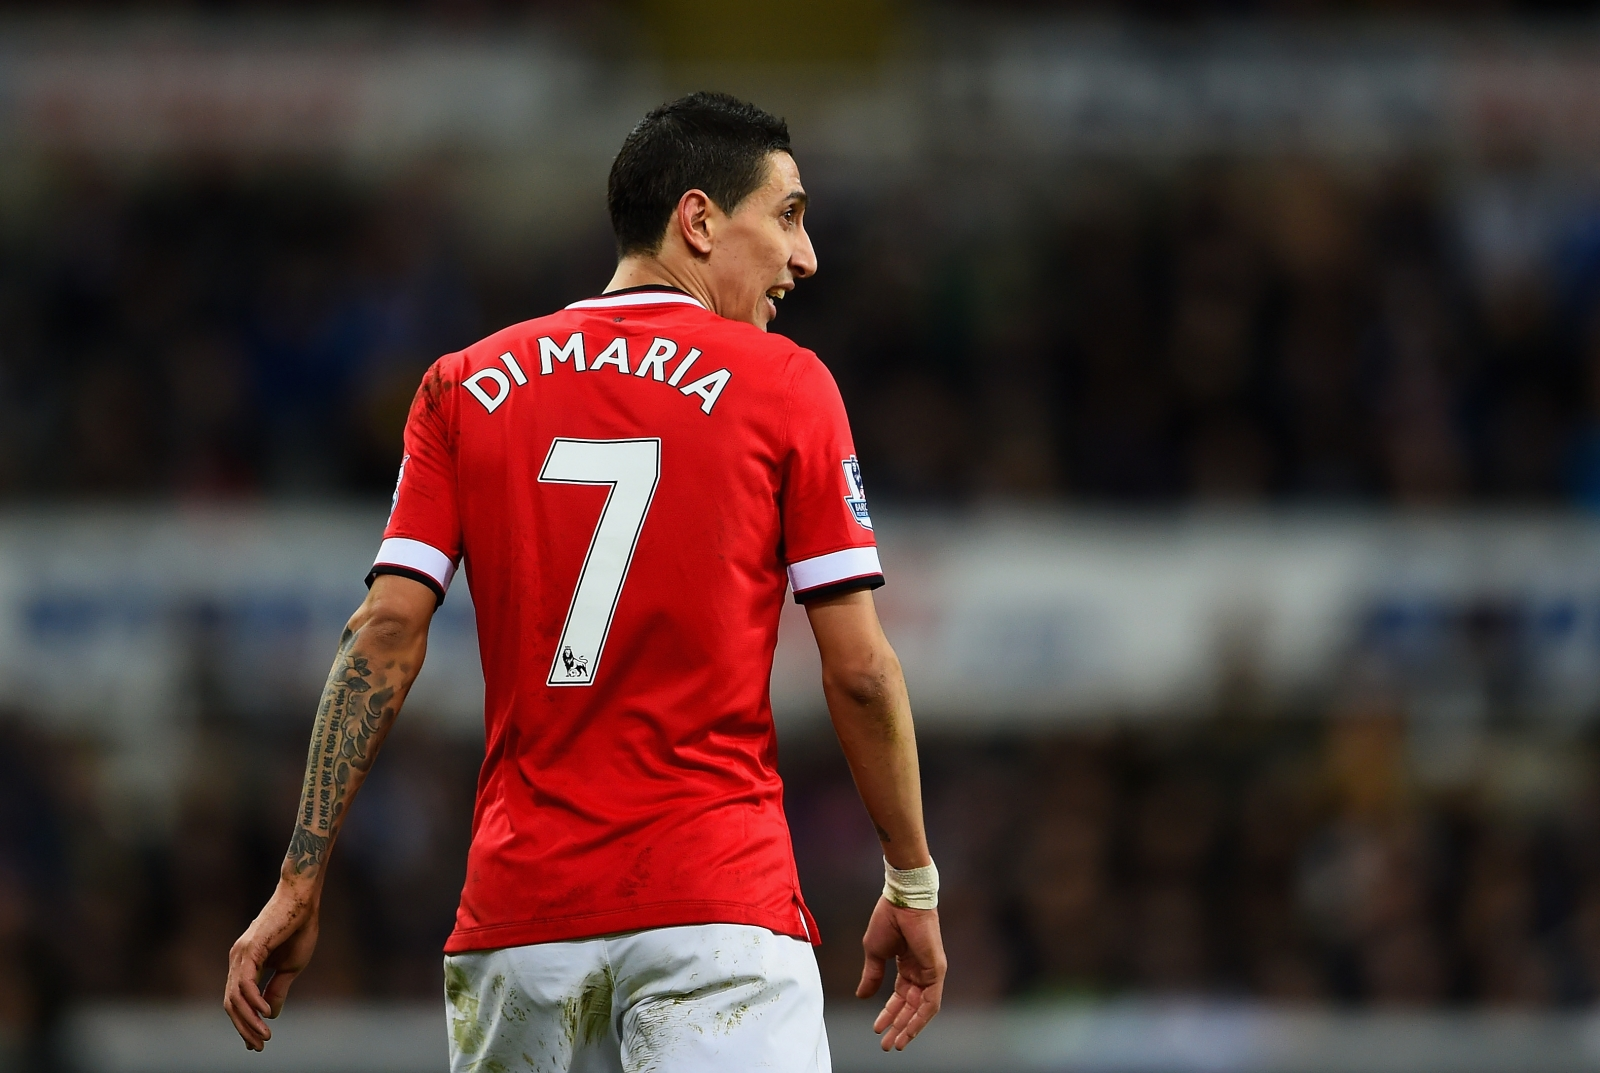 Manchester United Angel Di Maria has told club officials that he